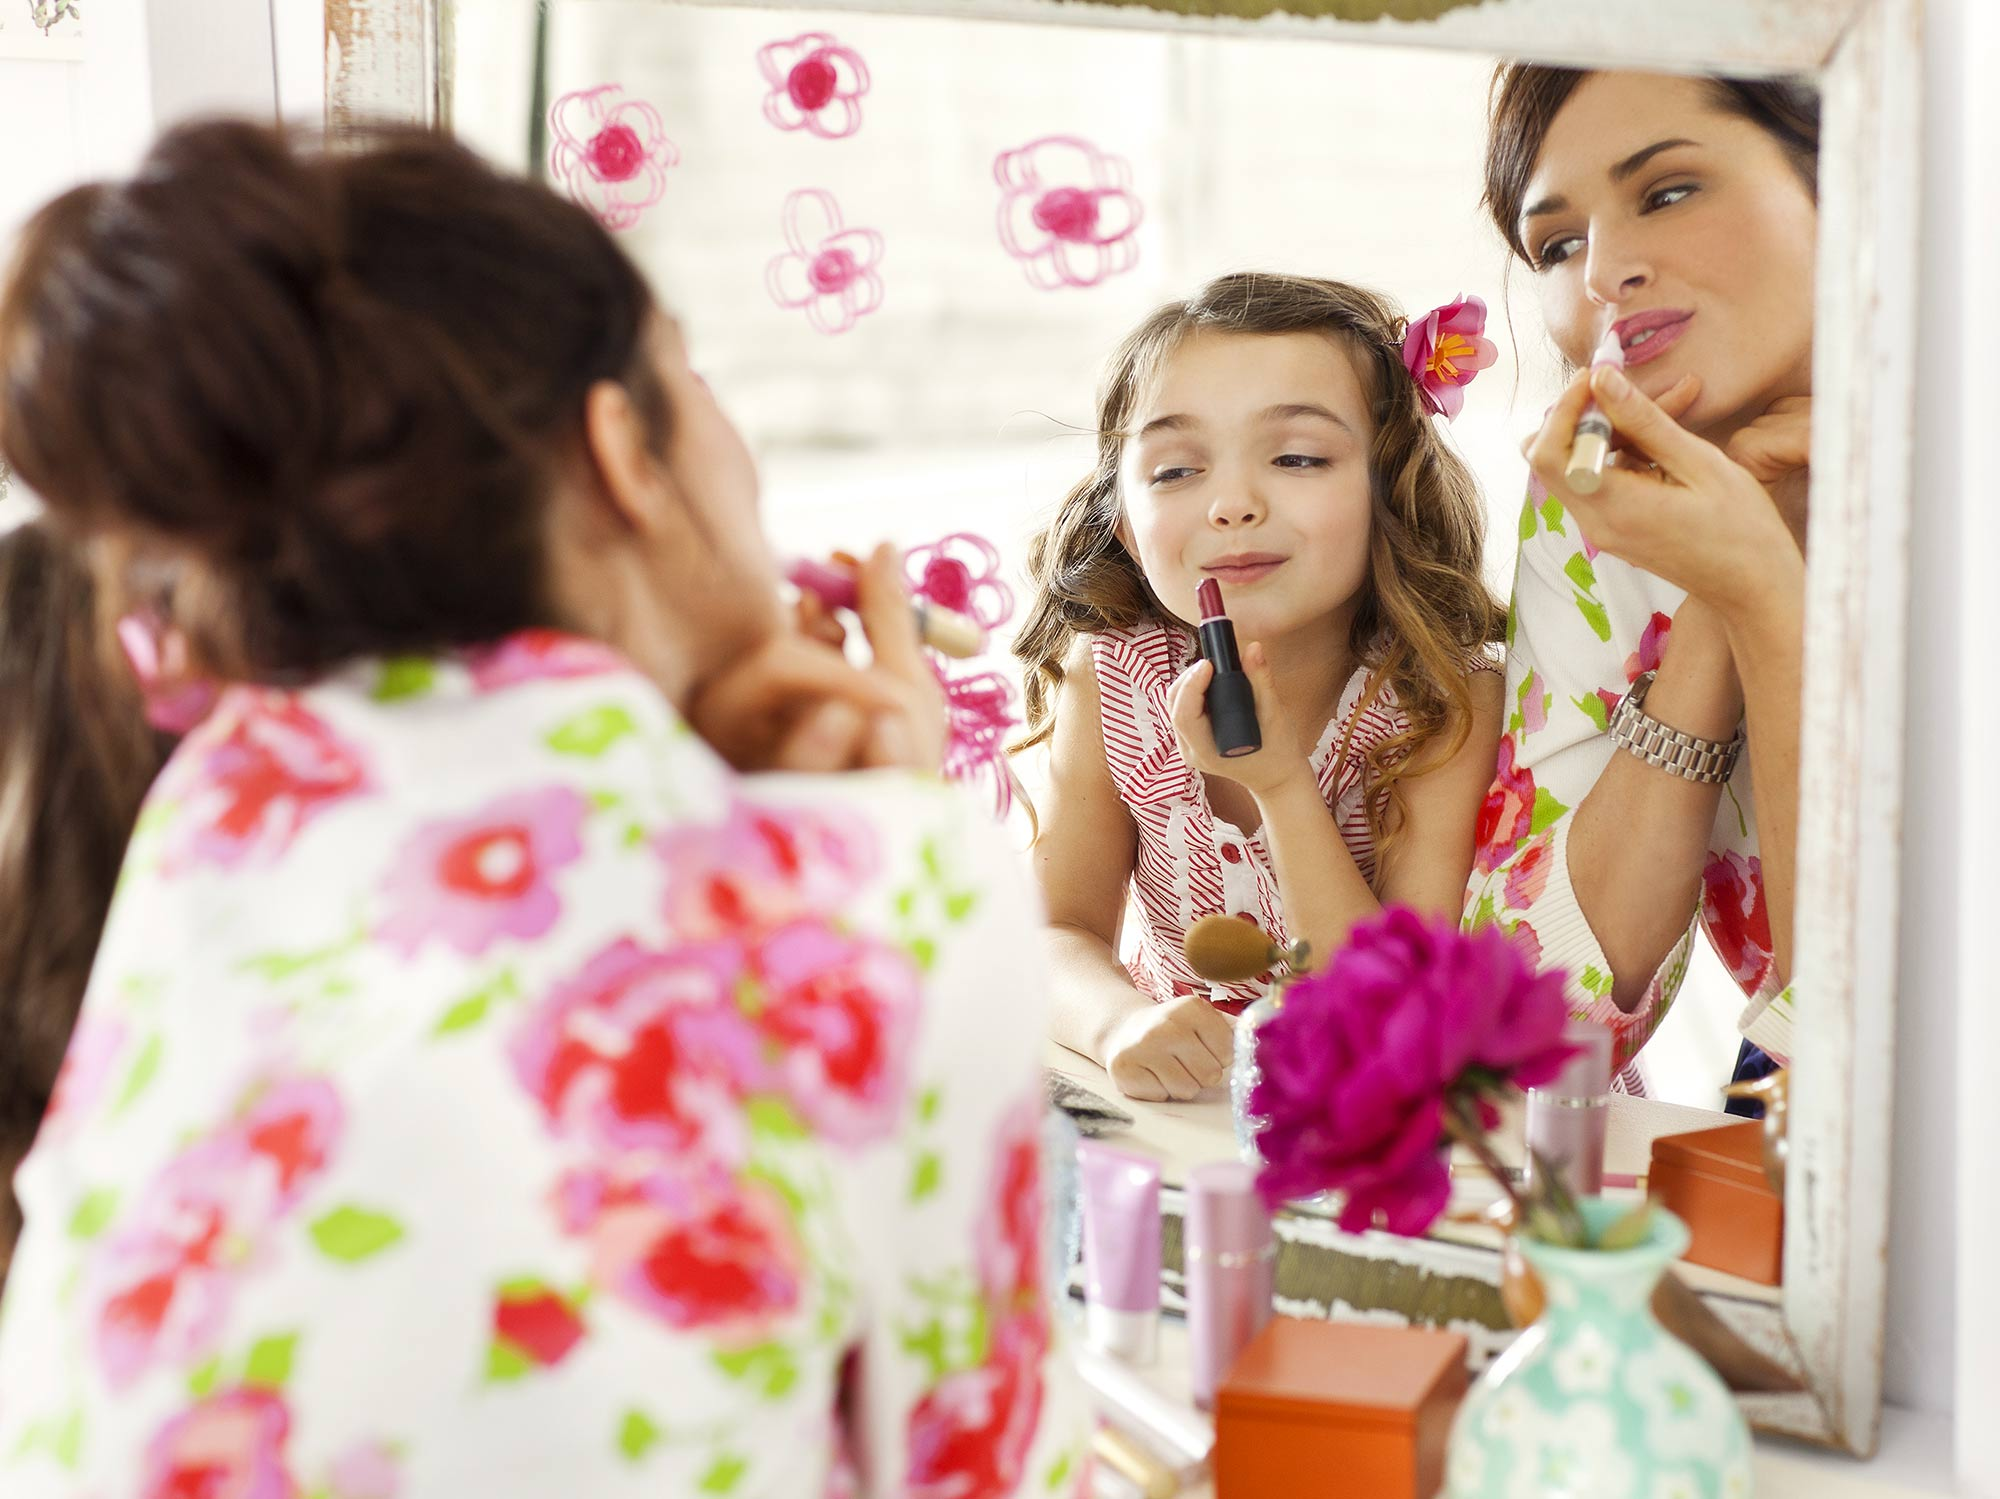 A mom and her daughter play with makeup in a mirror